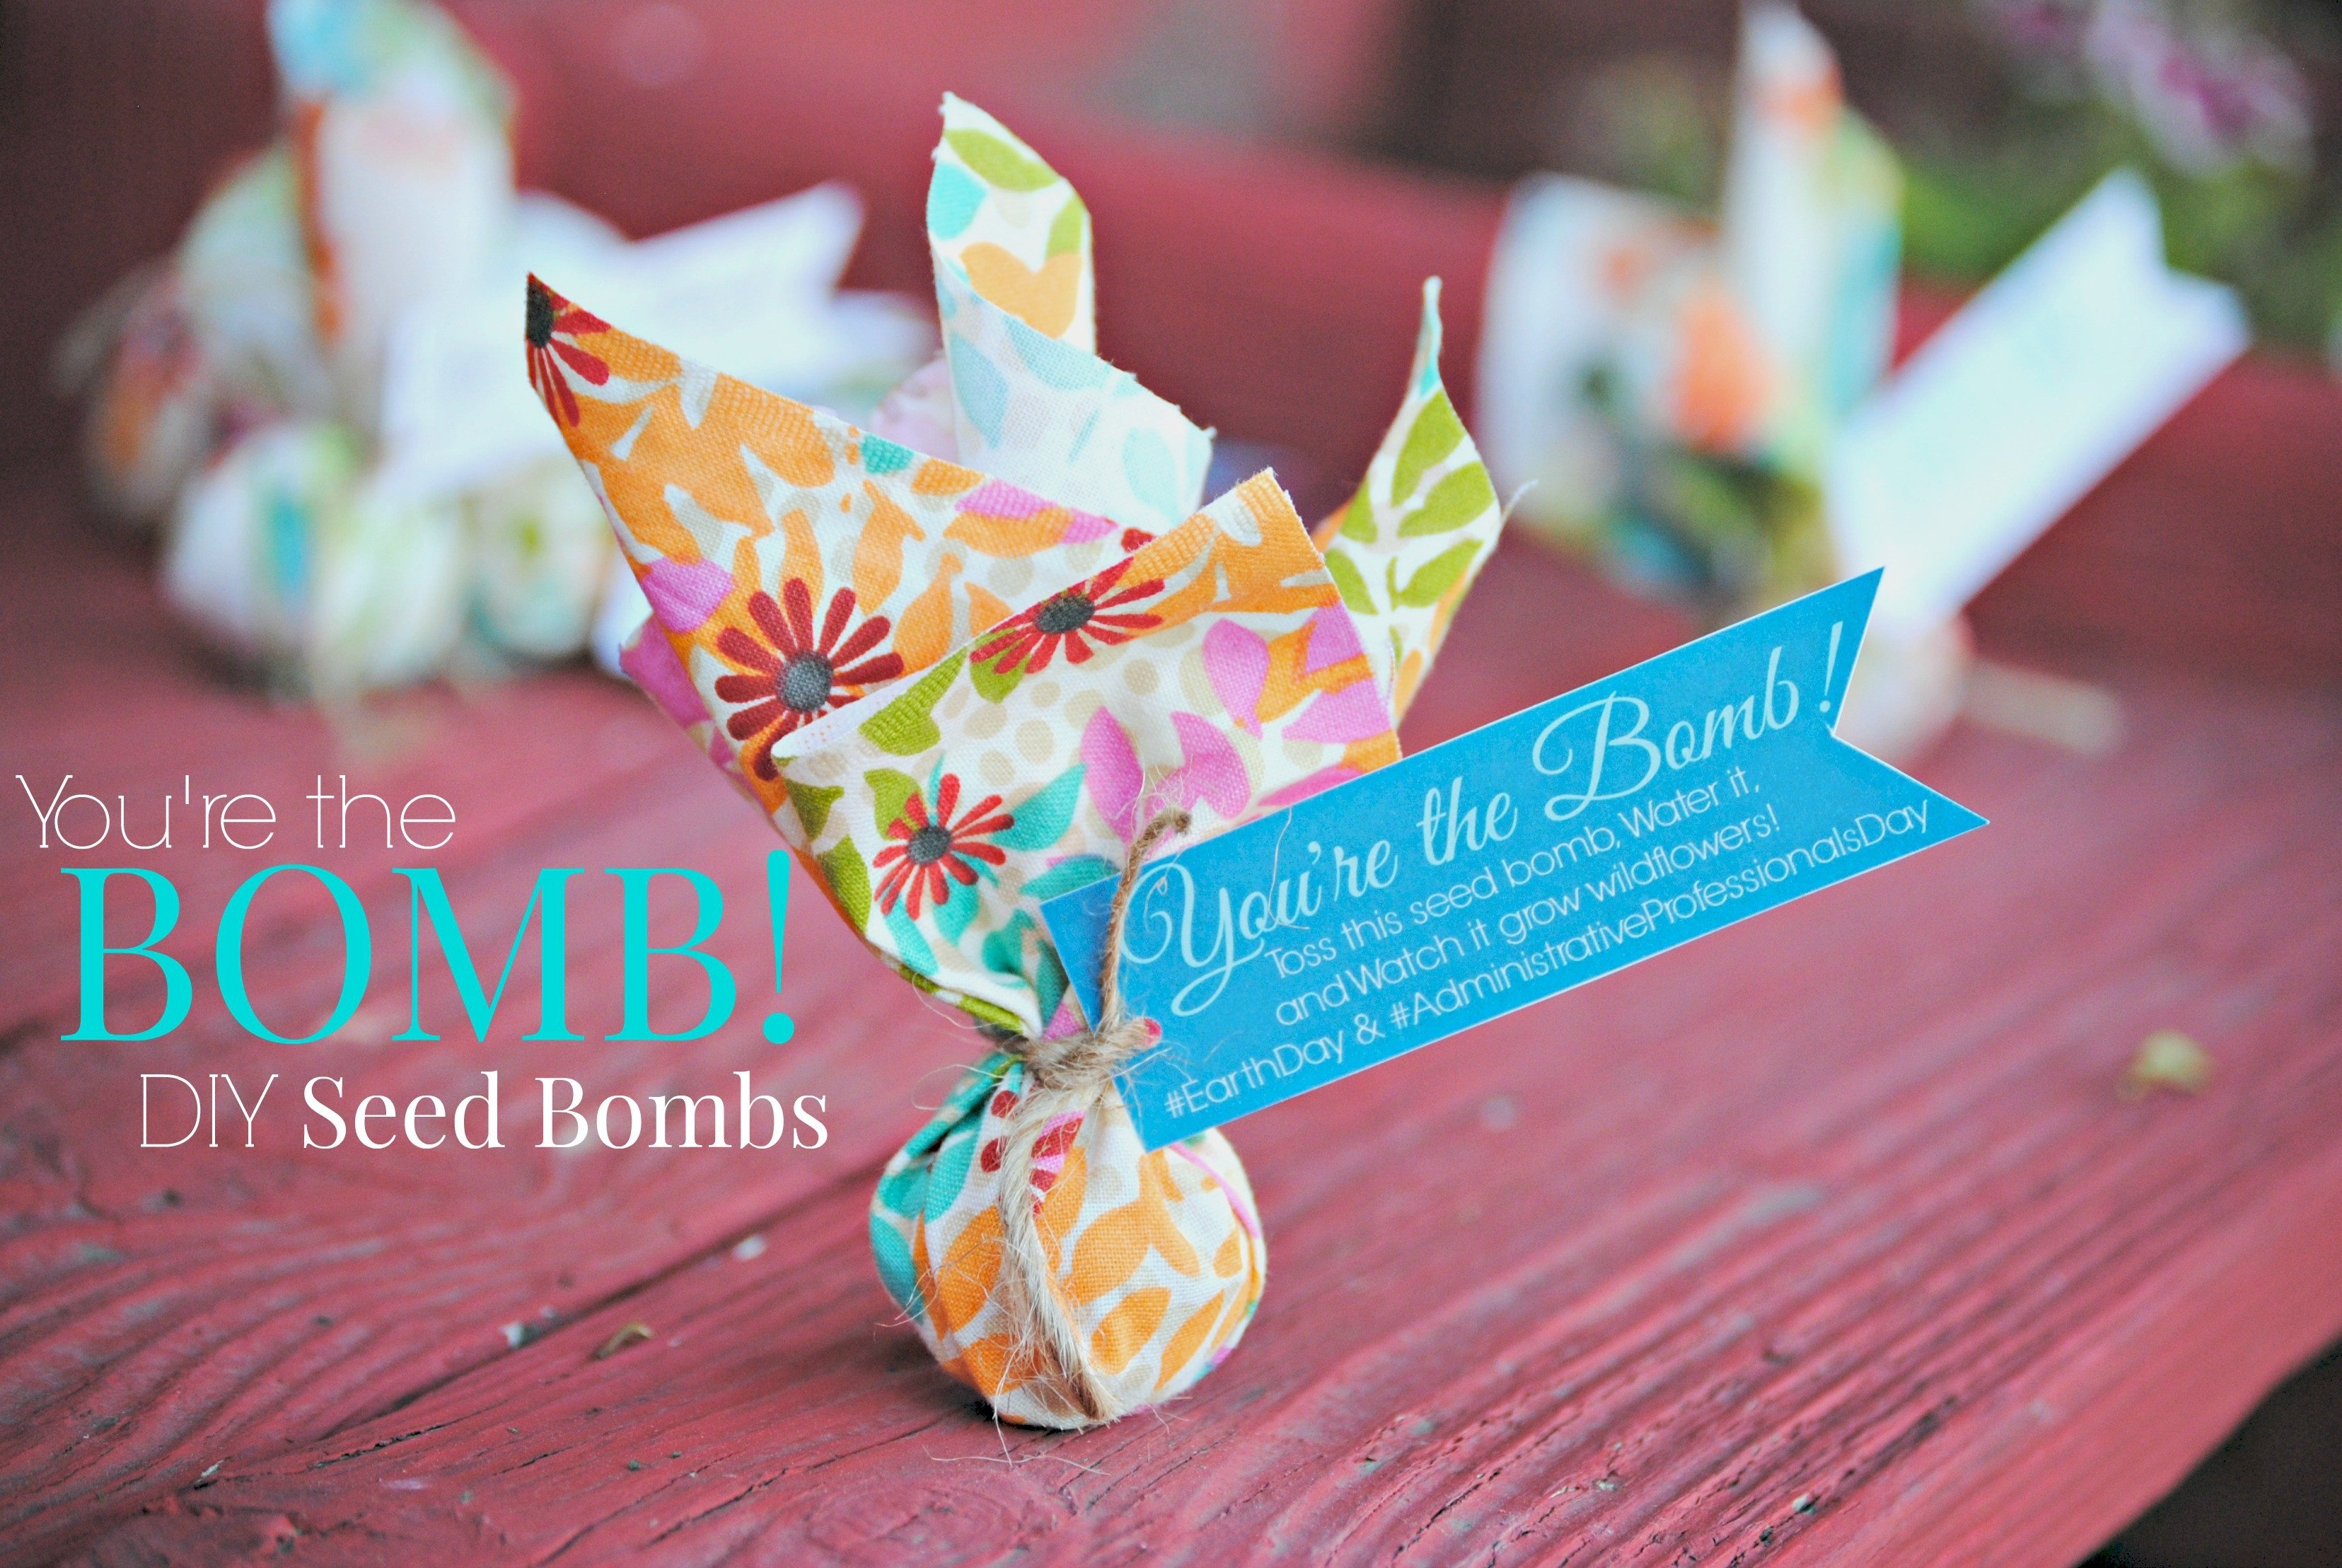 10 Stylish Admin Professionals Day Gift Ideas youre the bomb diy seed bombs administrative professionals day 1 2021